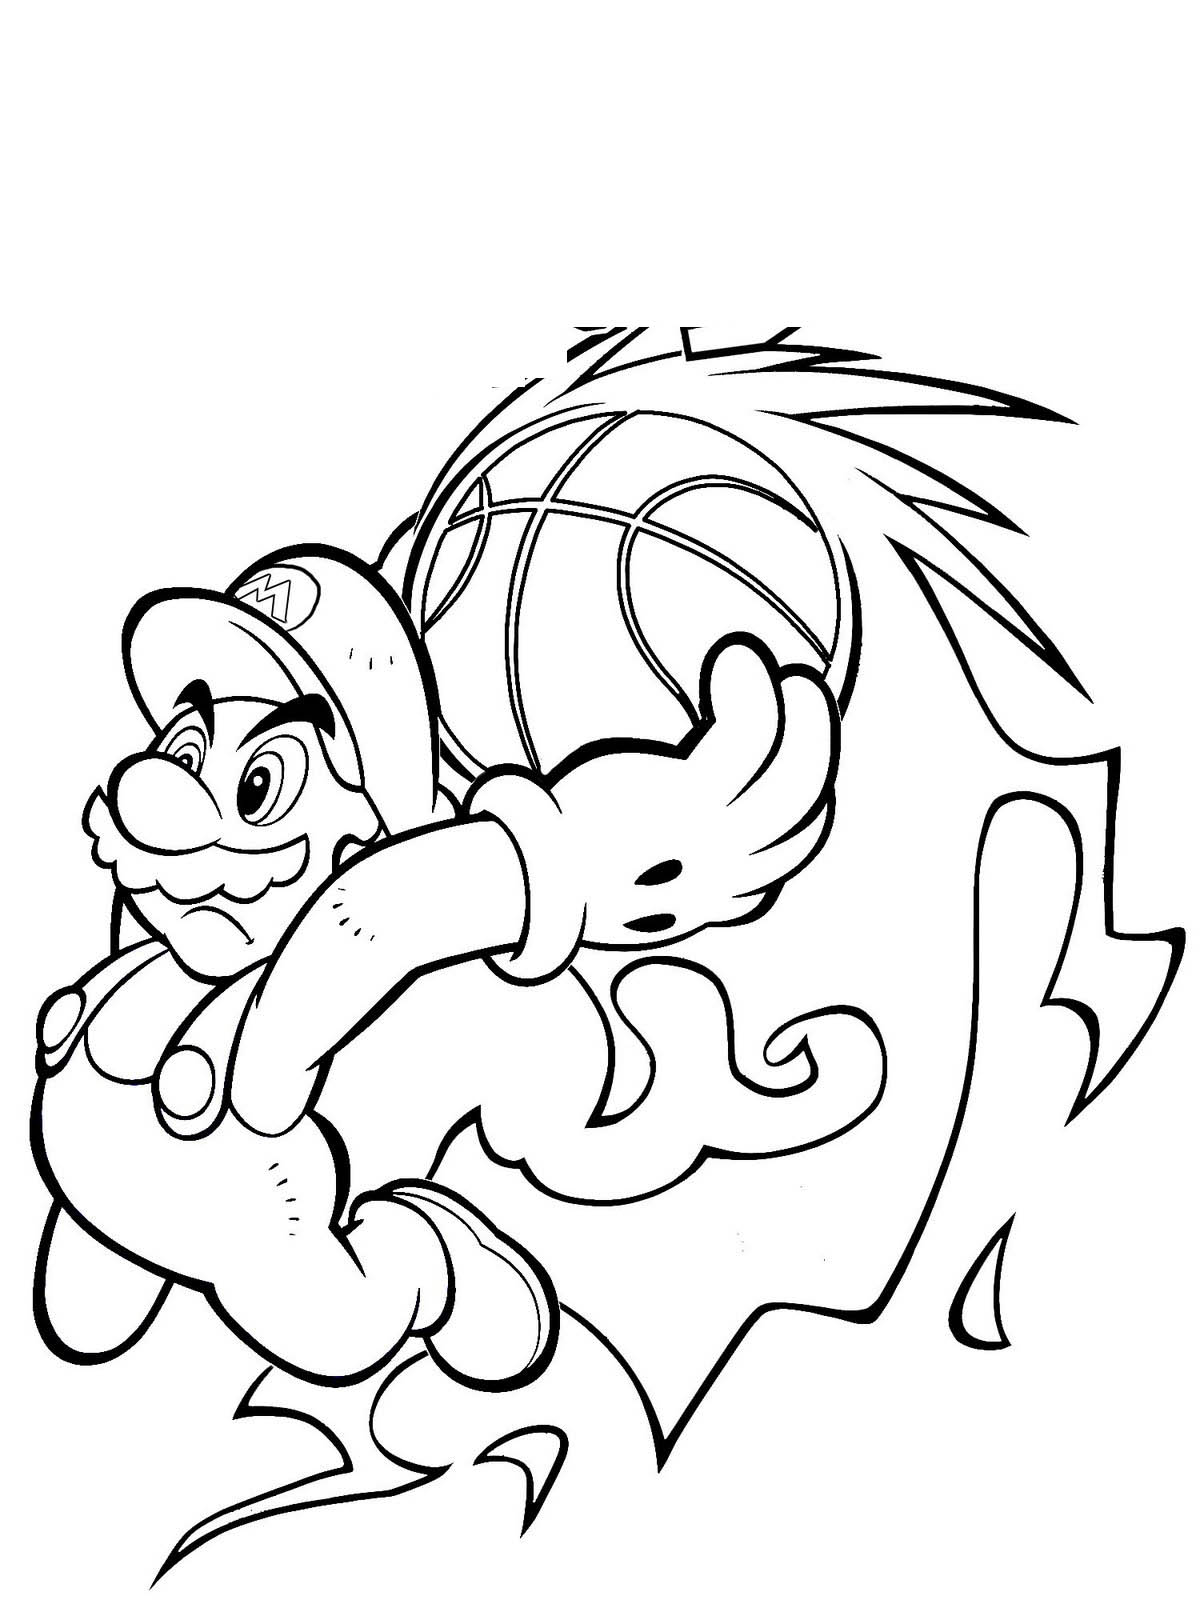 Fashion Magazine Mario Bros Coloring Pages